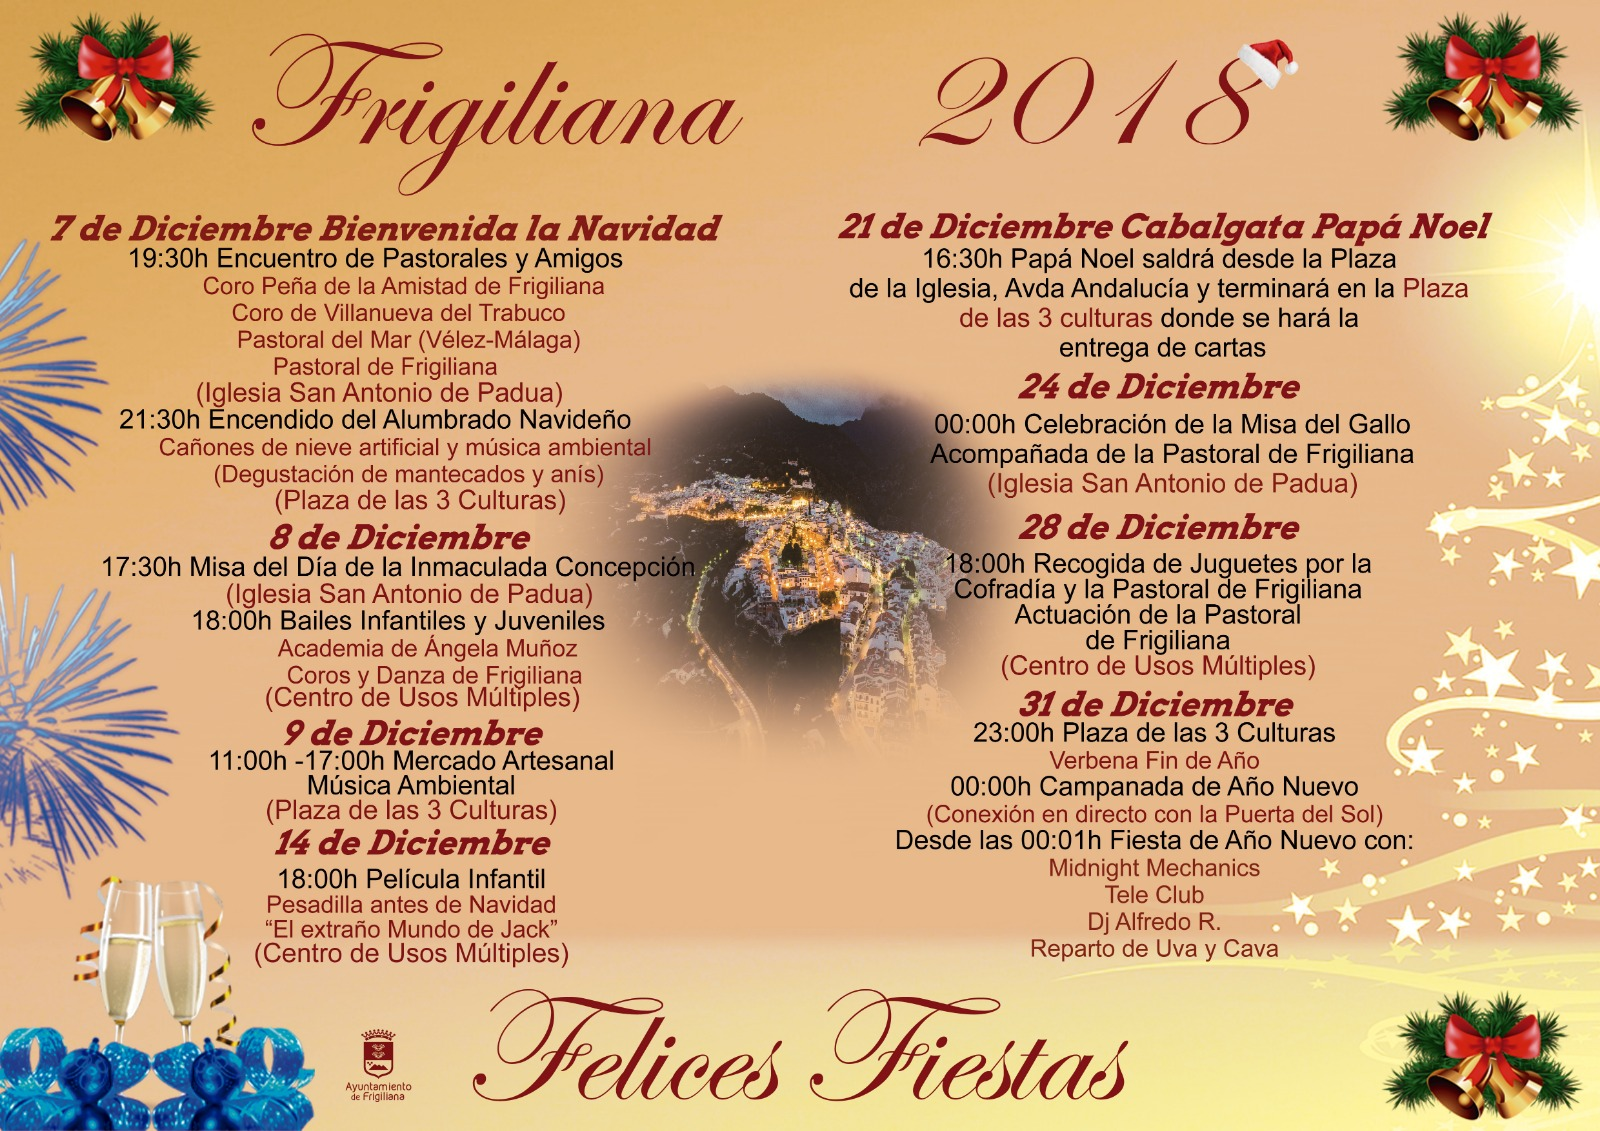 Christmas program in Frigiliana